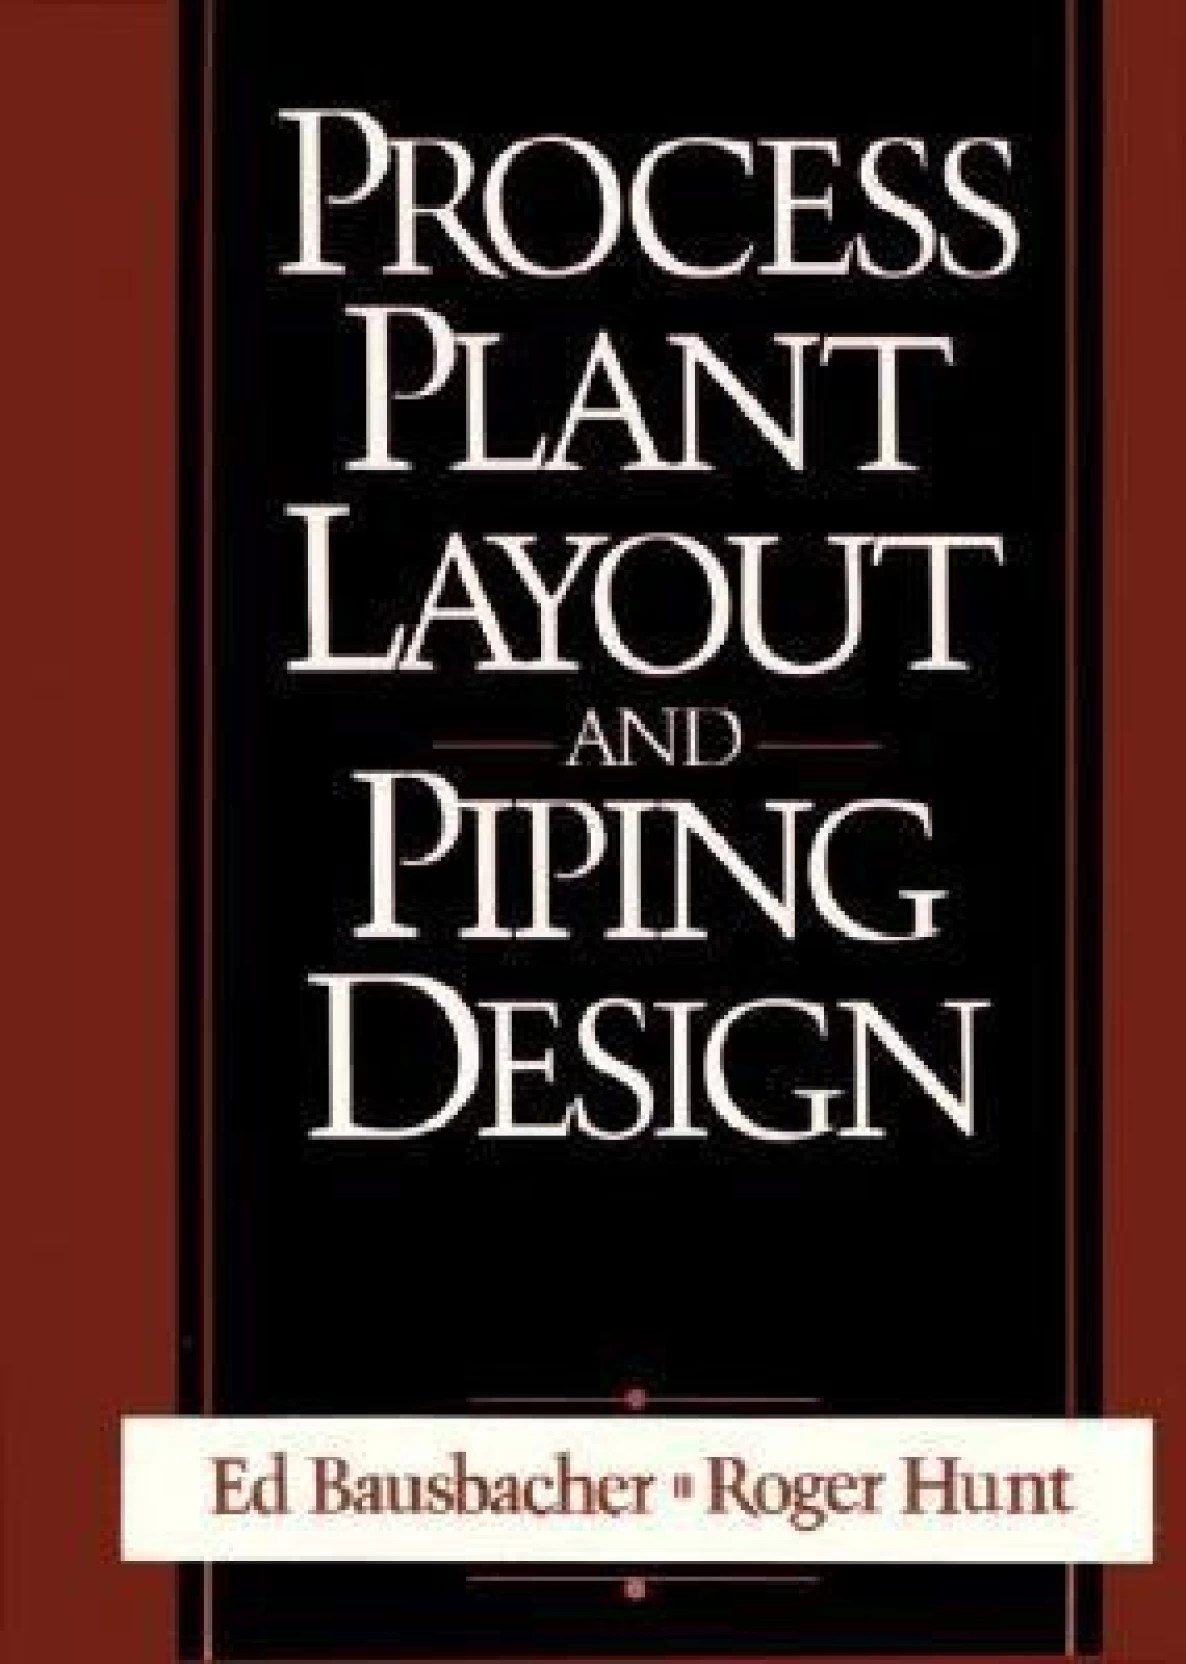 medium resolution of process plant layout and piping design english paperback roger hunt ed bausbacher